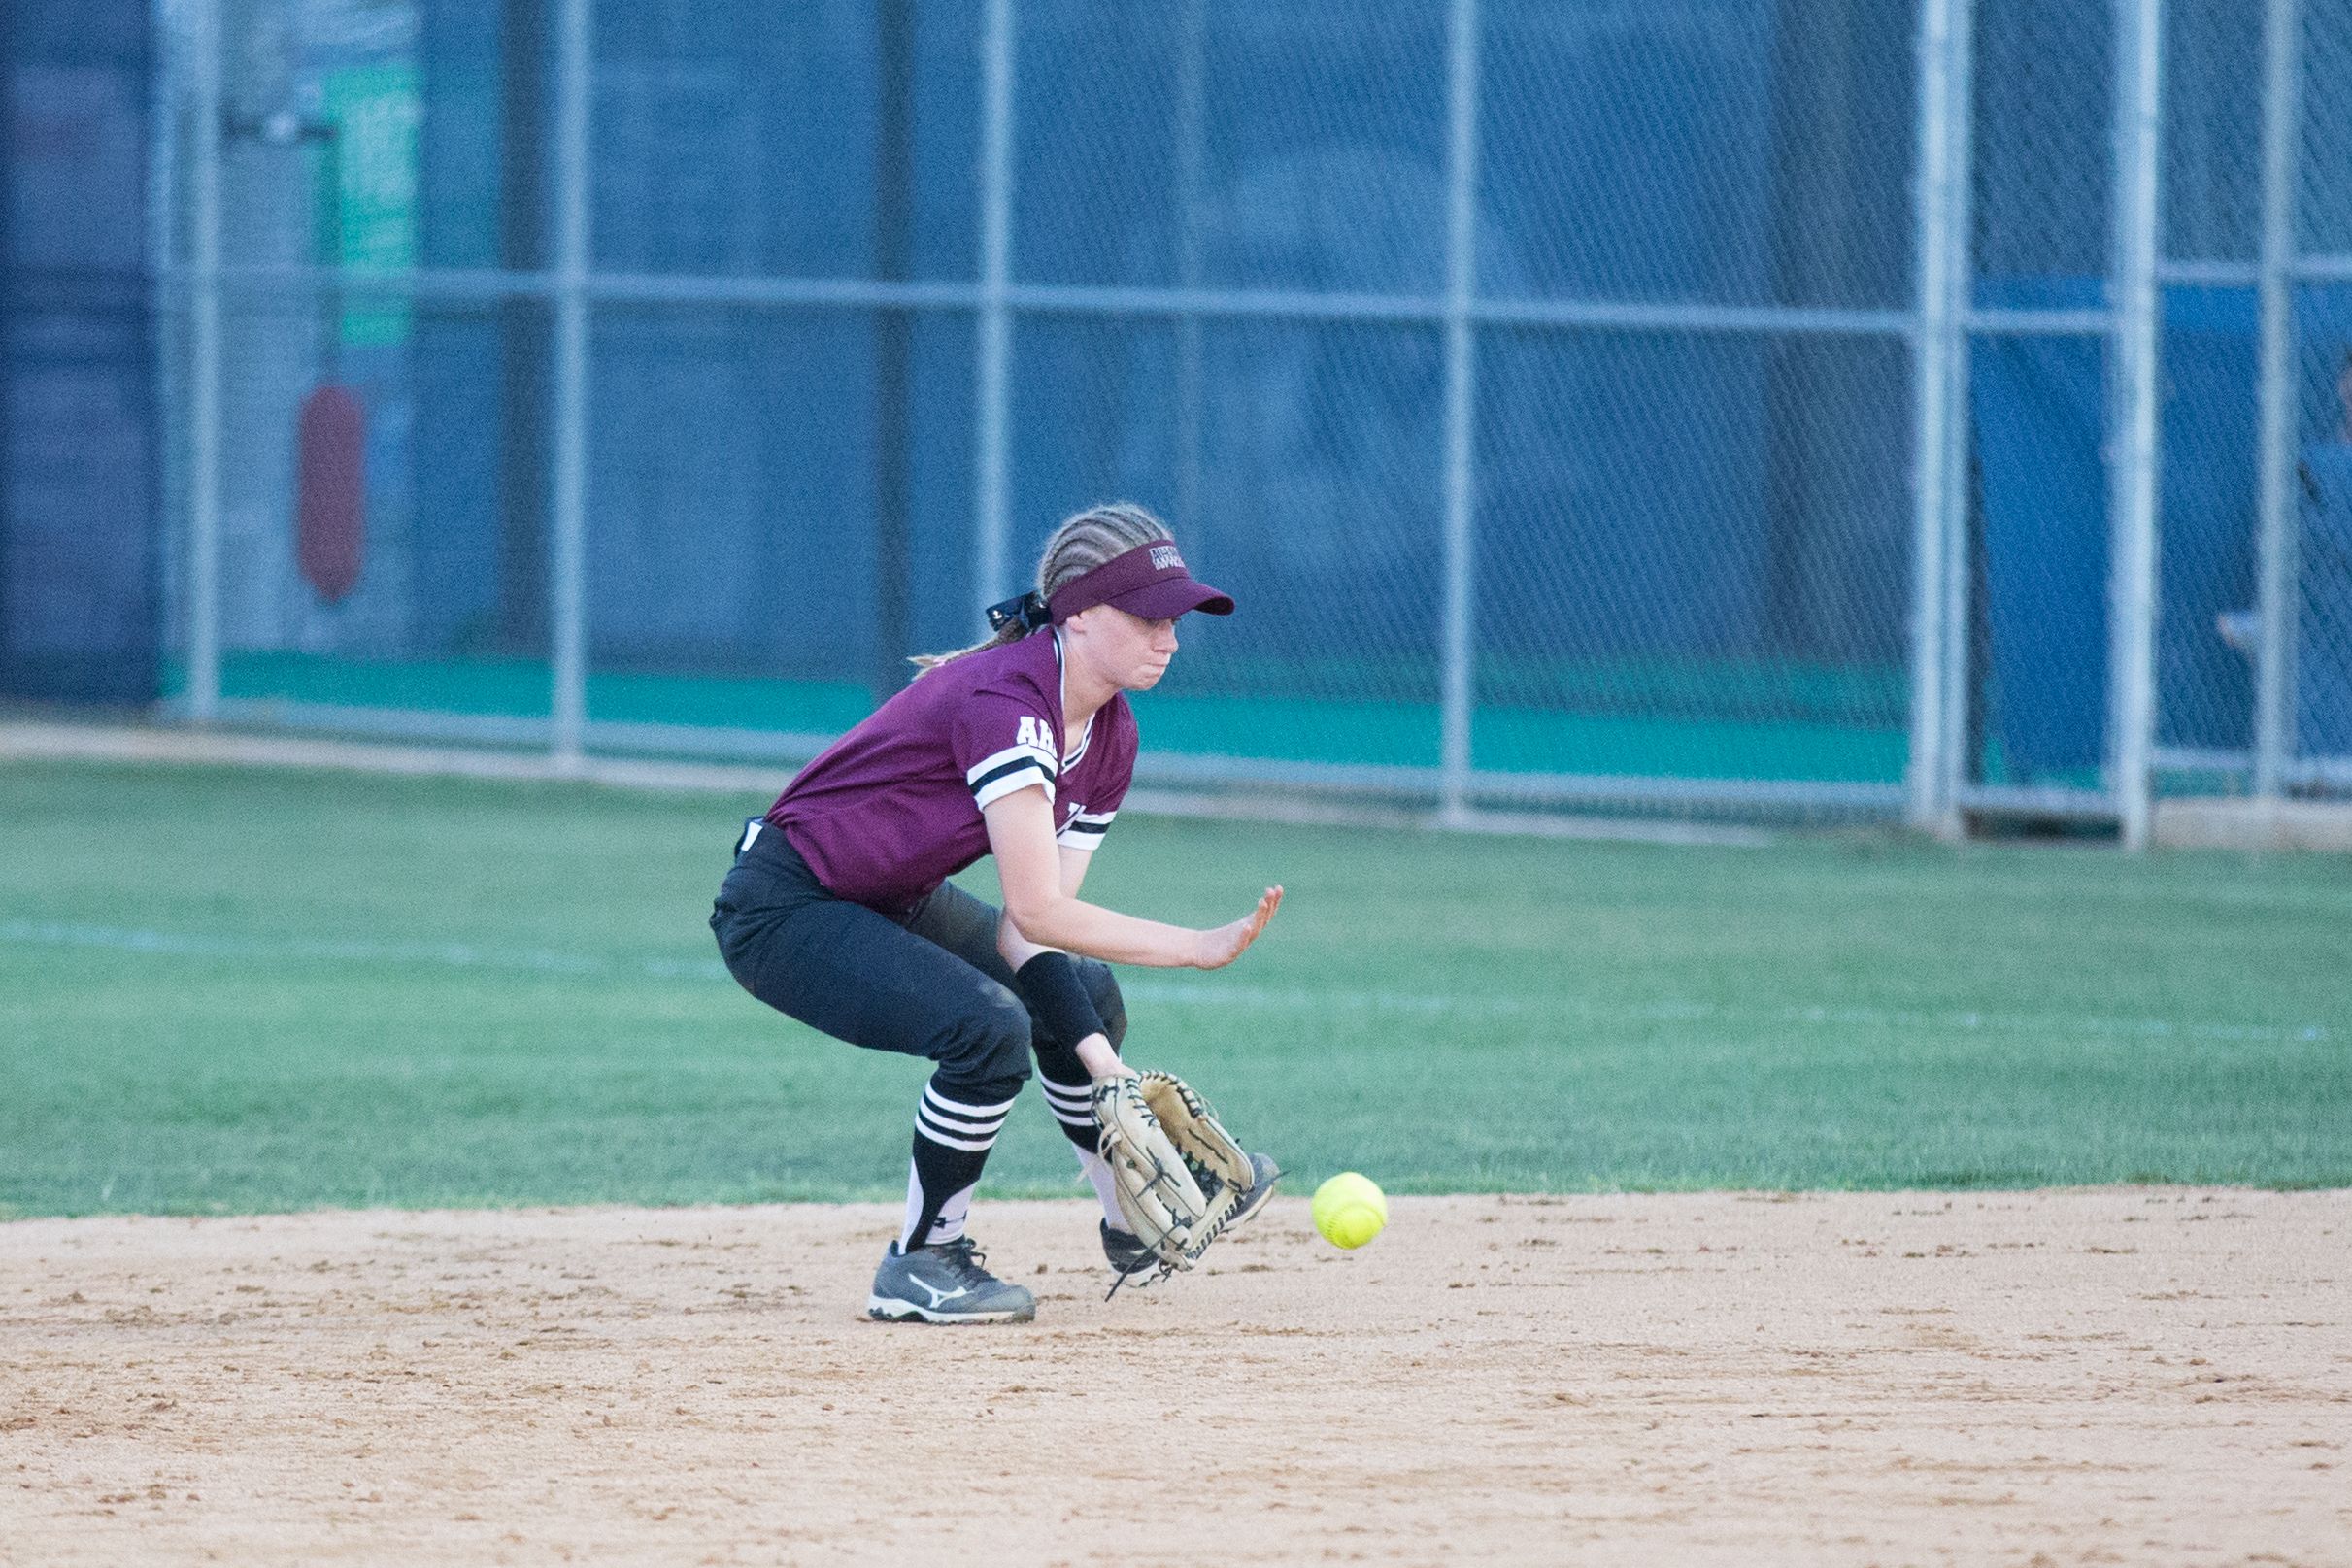 5_18 Wylie Softball-152.jpg